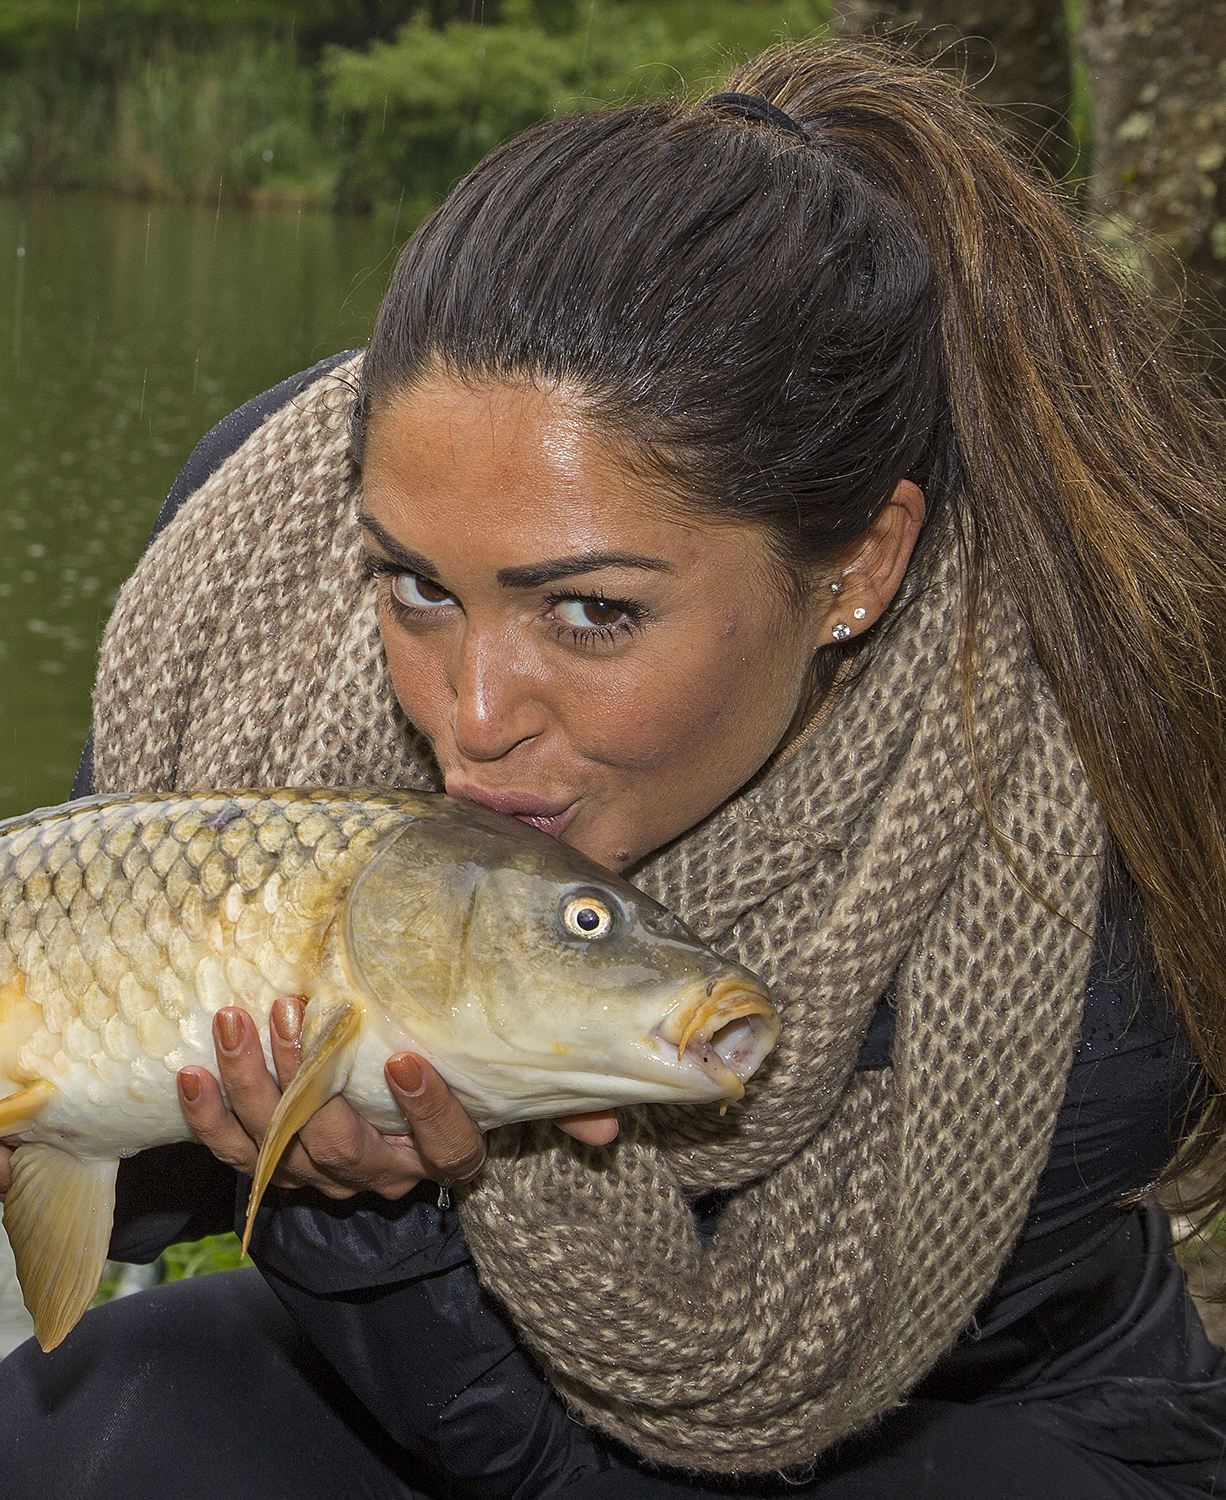 Fishomania host venue hayfield lakes backs glamour girls for Topless girls fishing